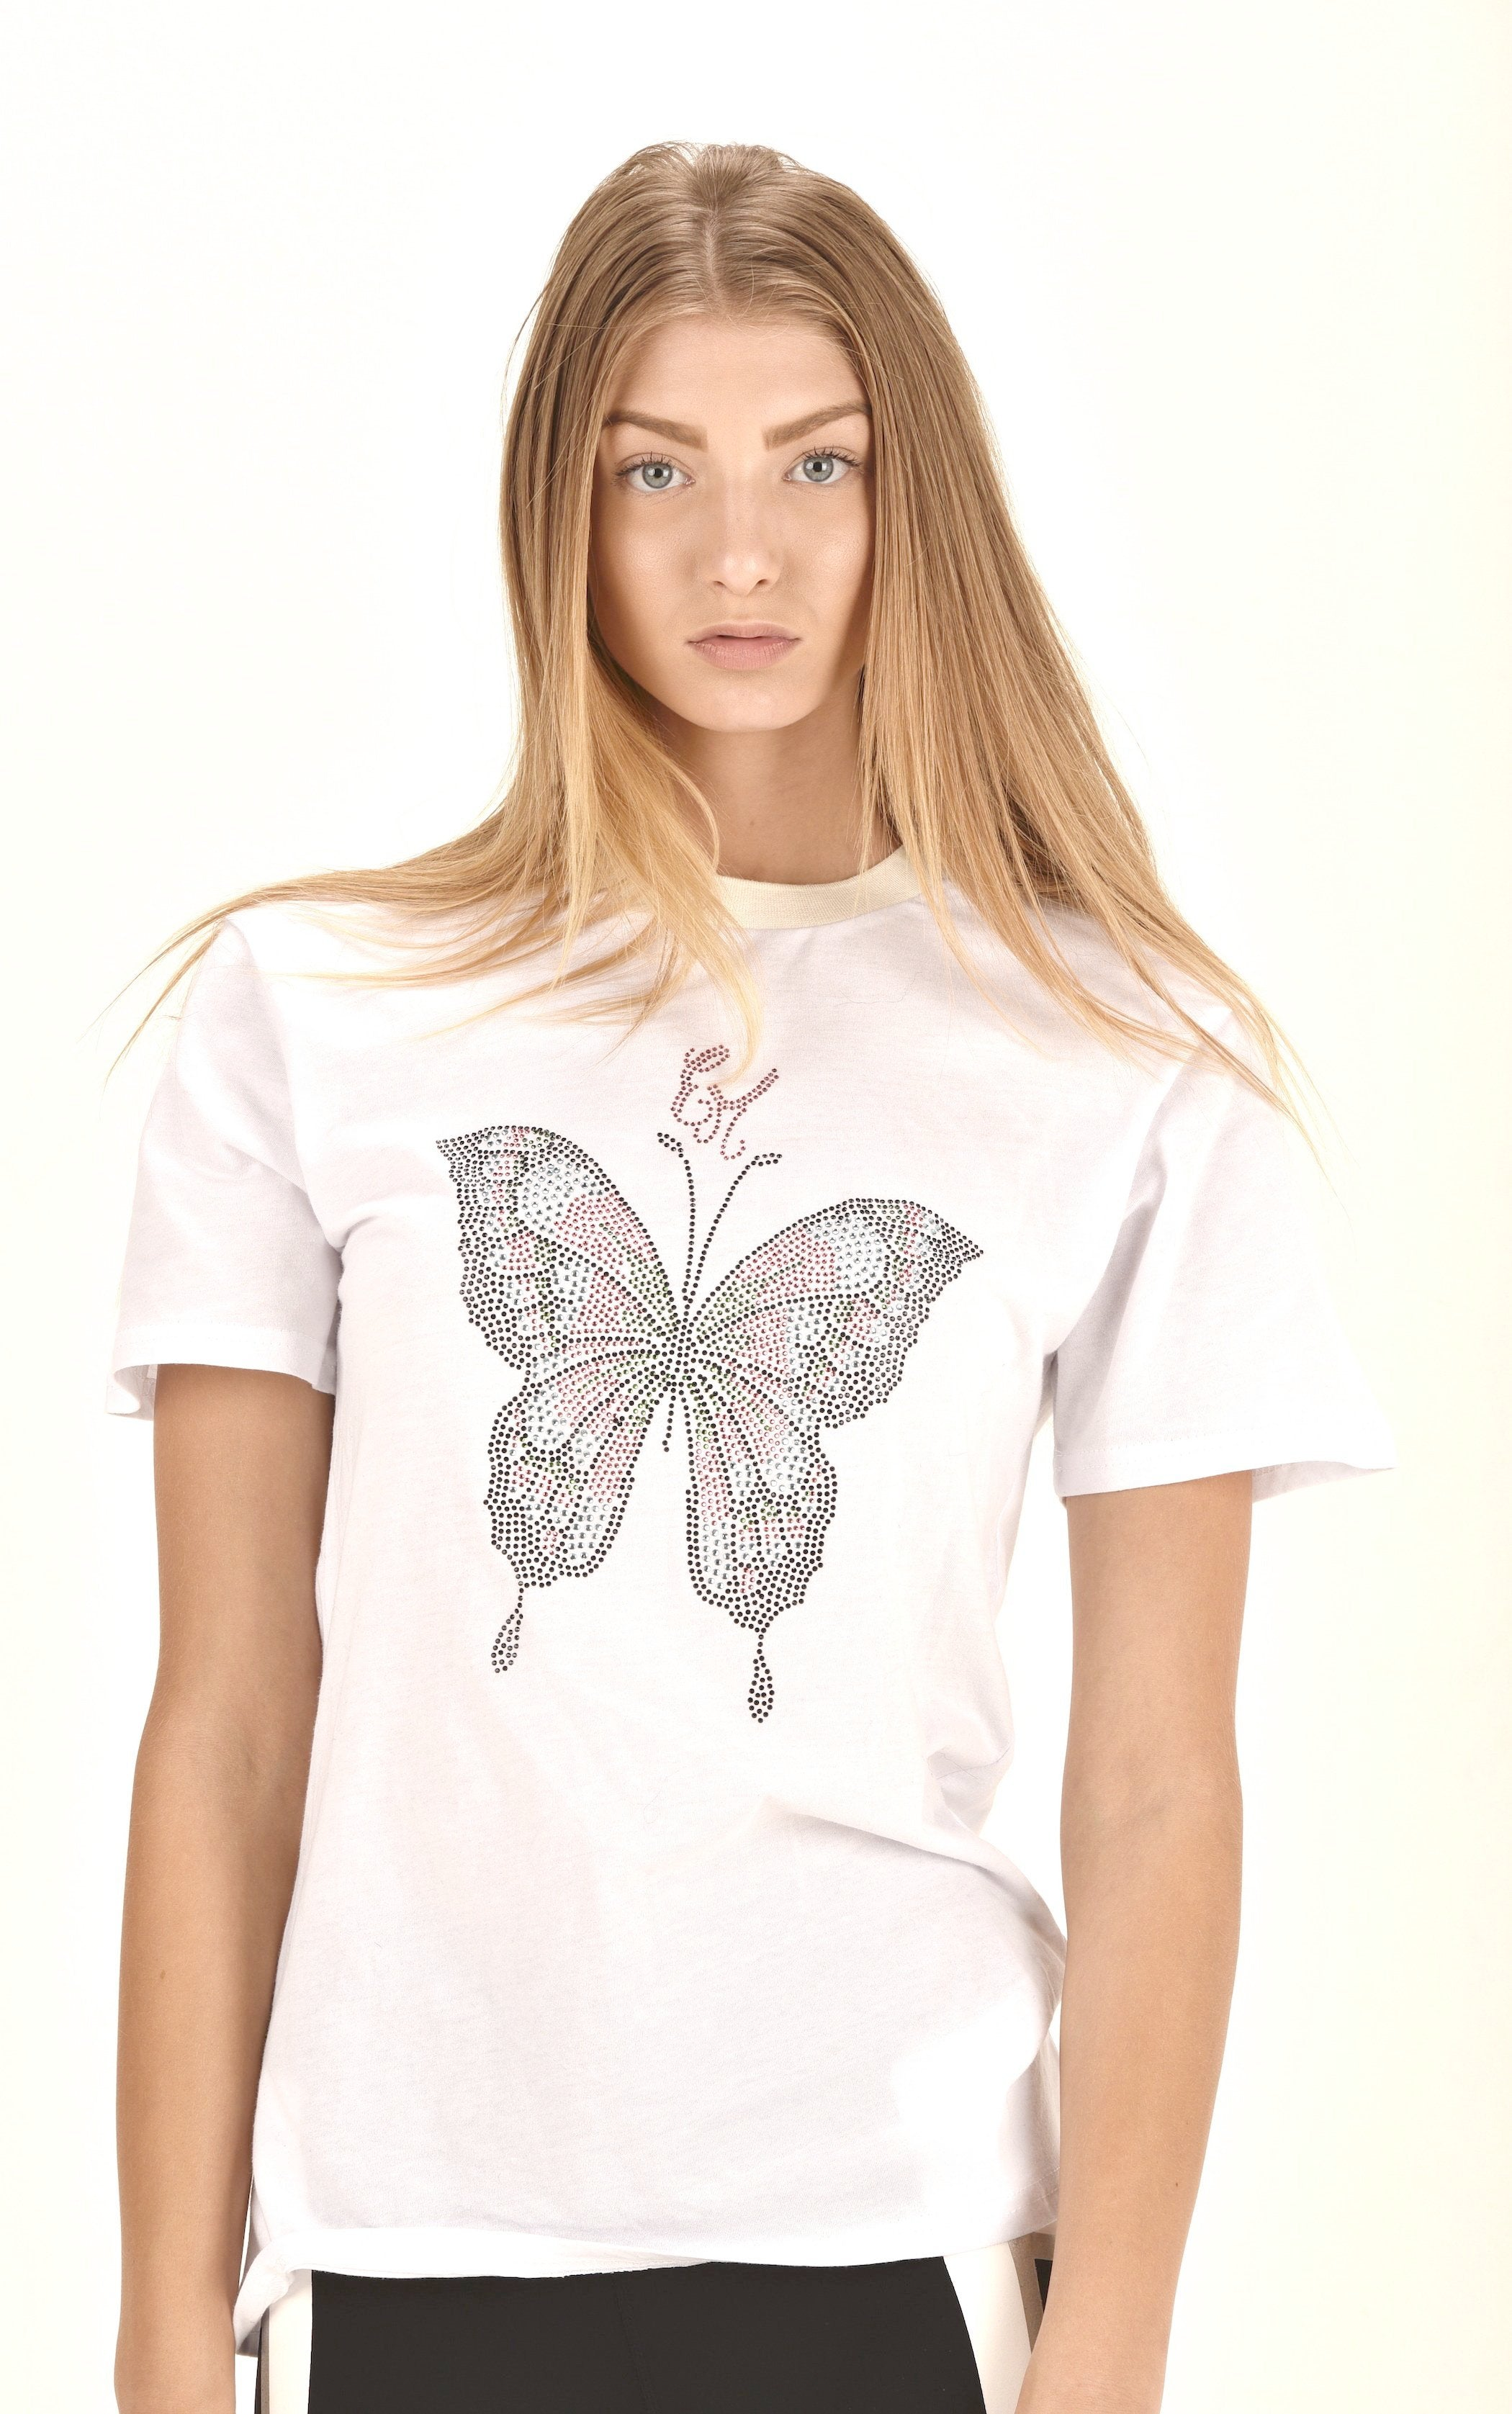 butterfly t shirt t shirts design graphic t shirts t shirt printing unique graphic t shirts  ellie mei design t shirts  logo tee women's black t shirts  gifts idea christmas gifts birthday gifts butterfly festival t shirts  fitted t shirt  white sparkle butterfly t shirts